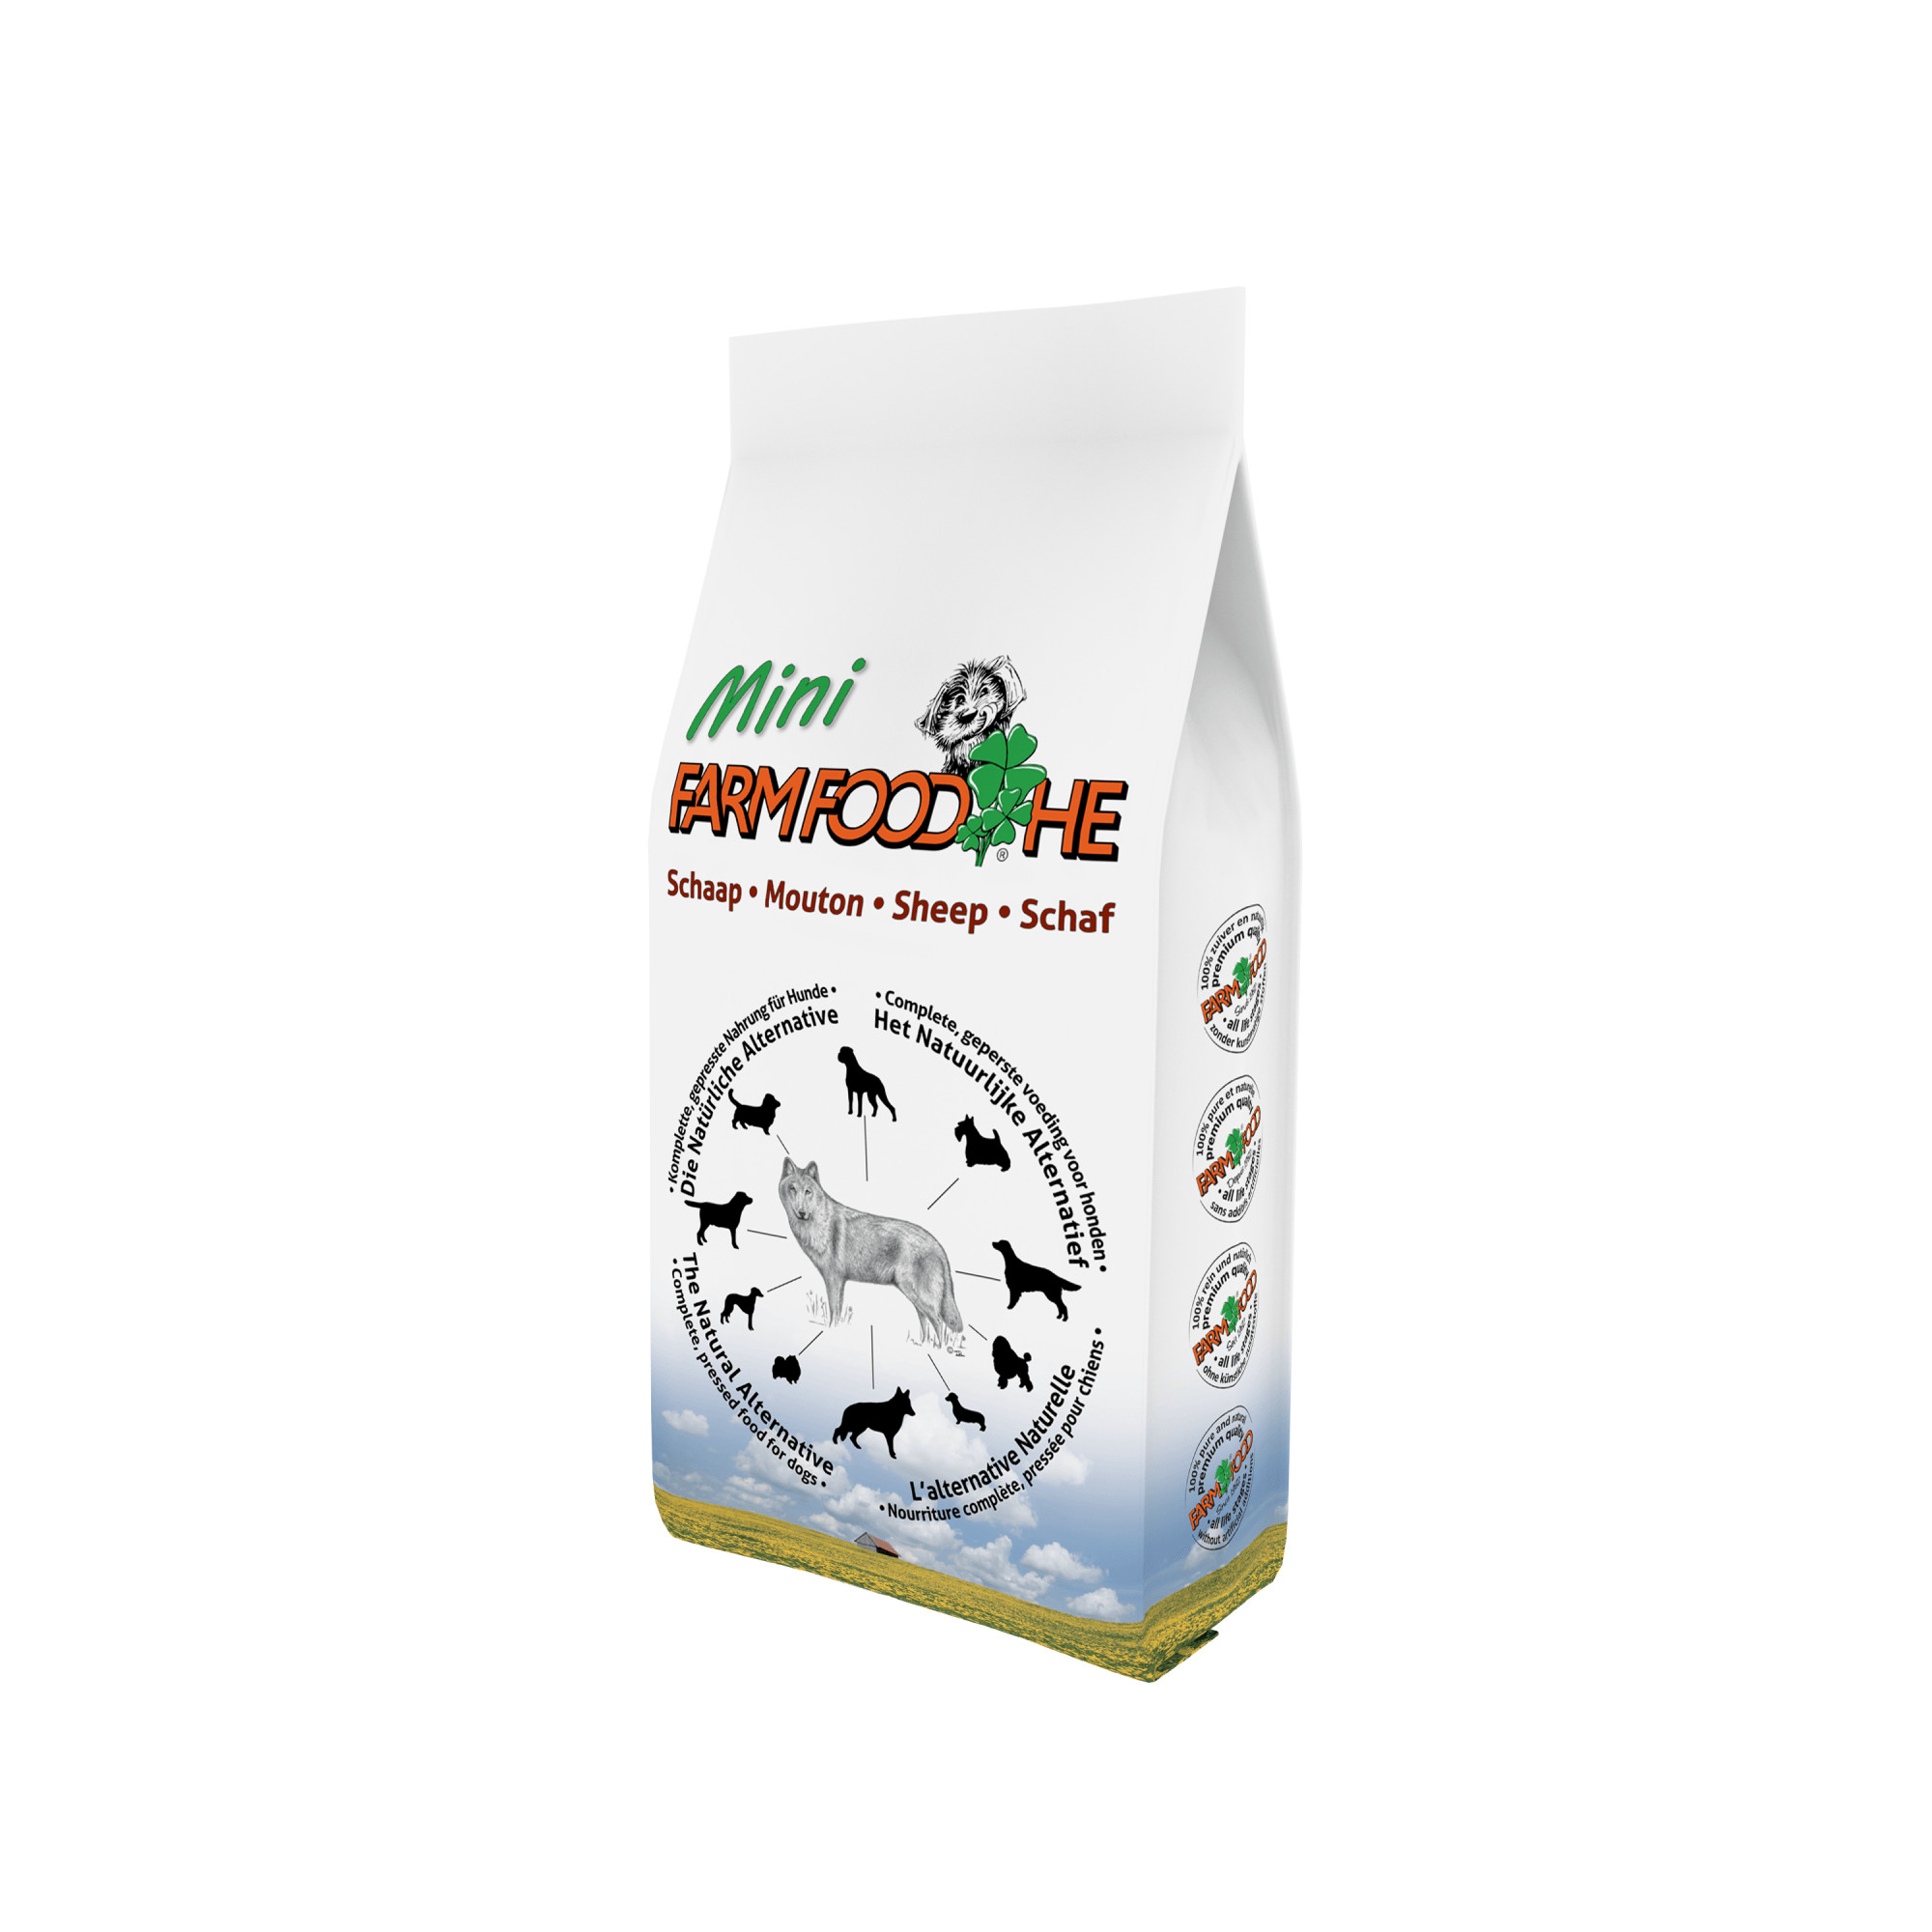 Farm Food HE Schaap Puppy / Mini 4kg